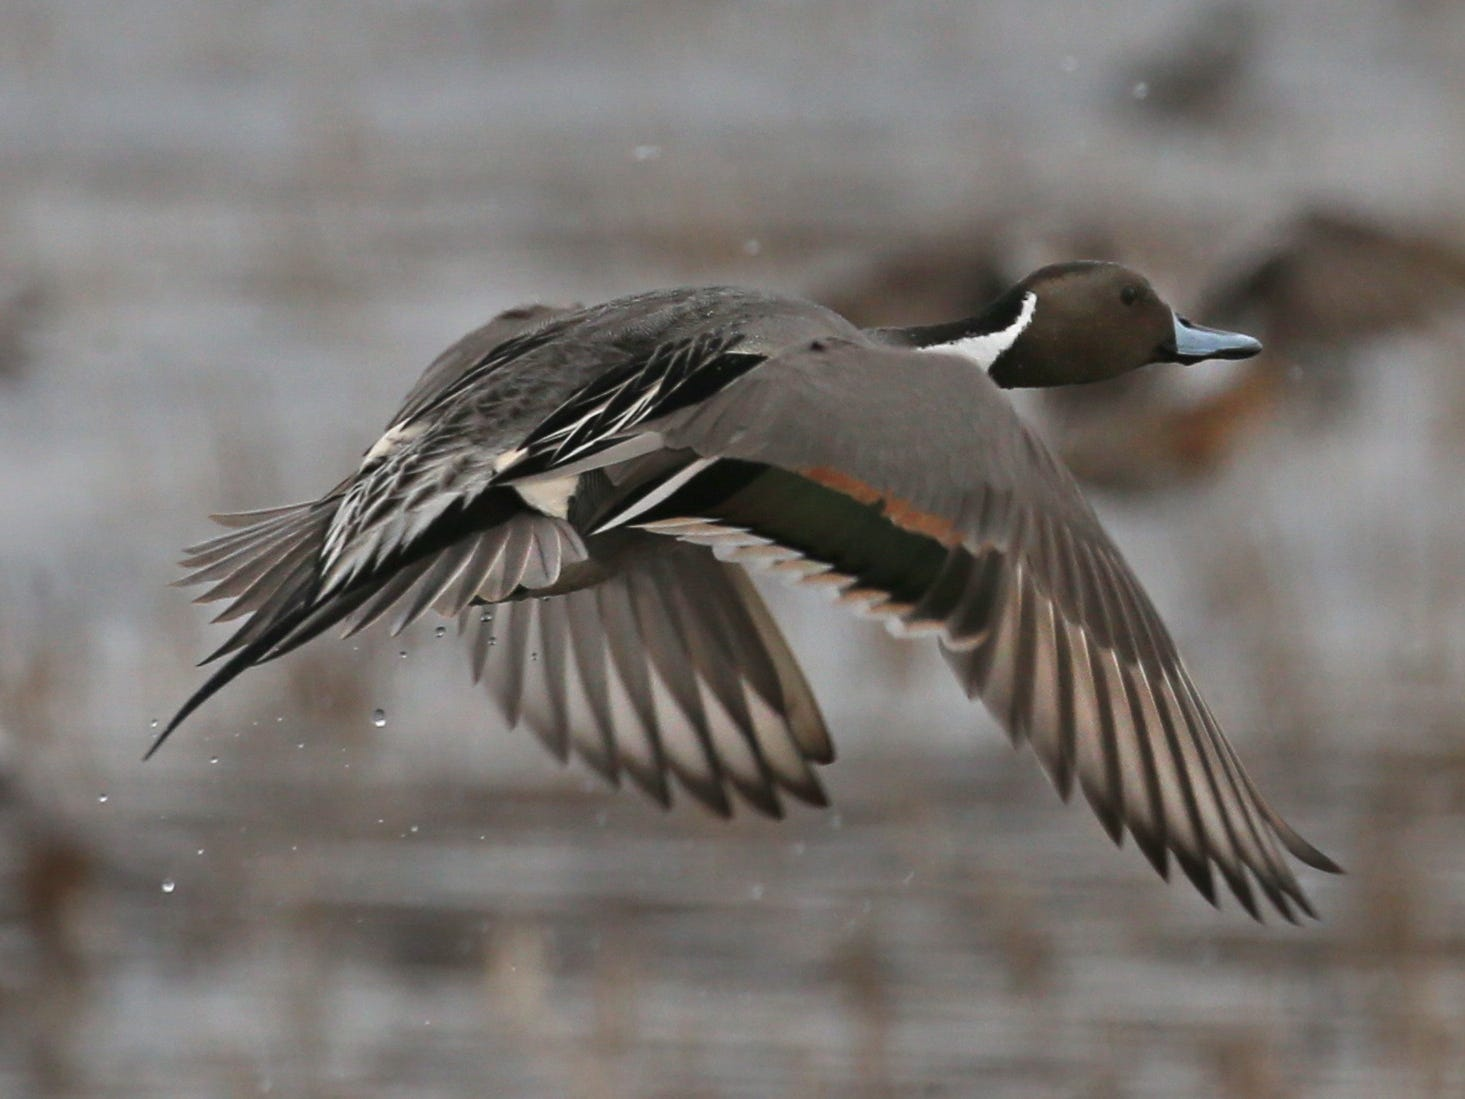 A Northern Pintail duck takes flight during the annual spring migration at the Montezuma Wetlands Complex in Savannah Thursday, March 21, 2019.  Thousands of Pintails, American Wigeons, Ring-necked ducks, Green-winged Teals and American black ducks are currently migrating through Montezuma on their way north.